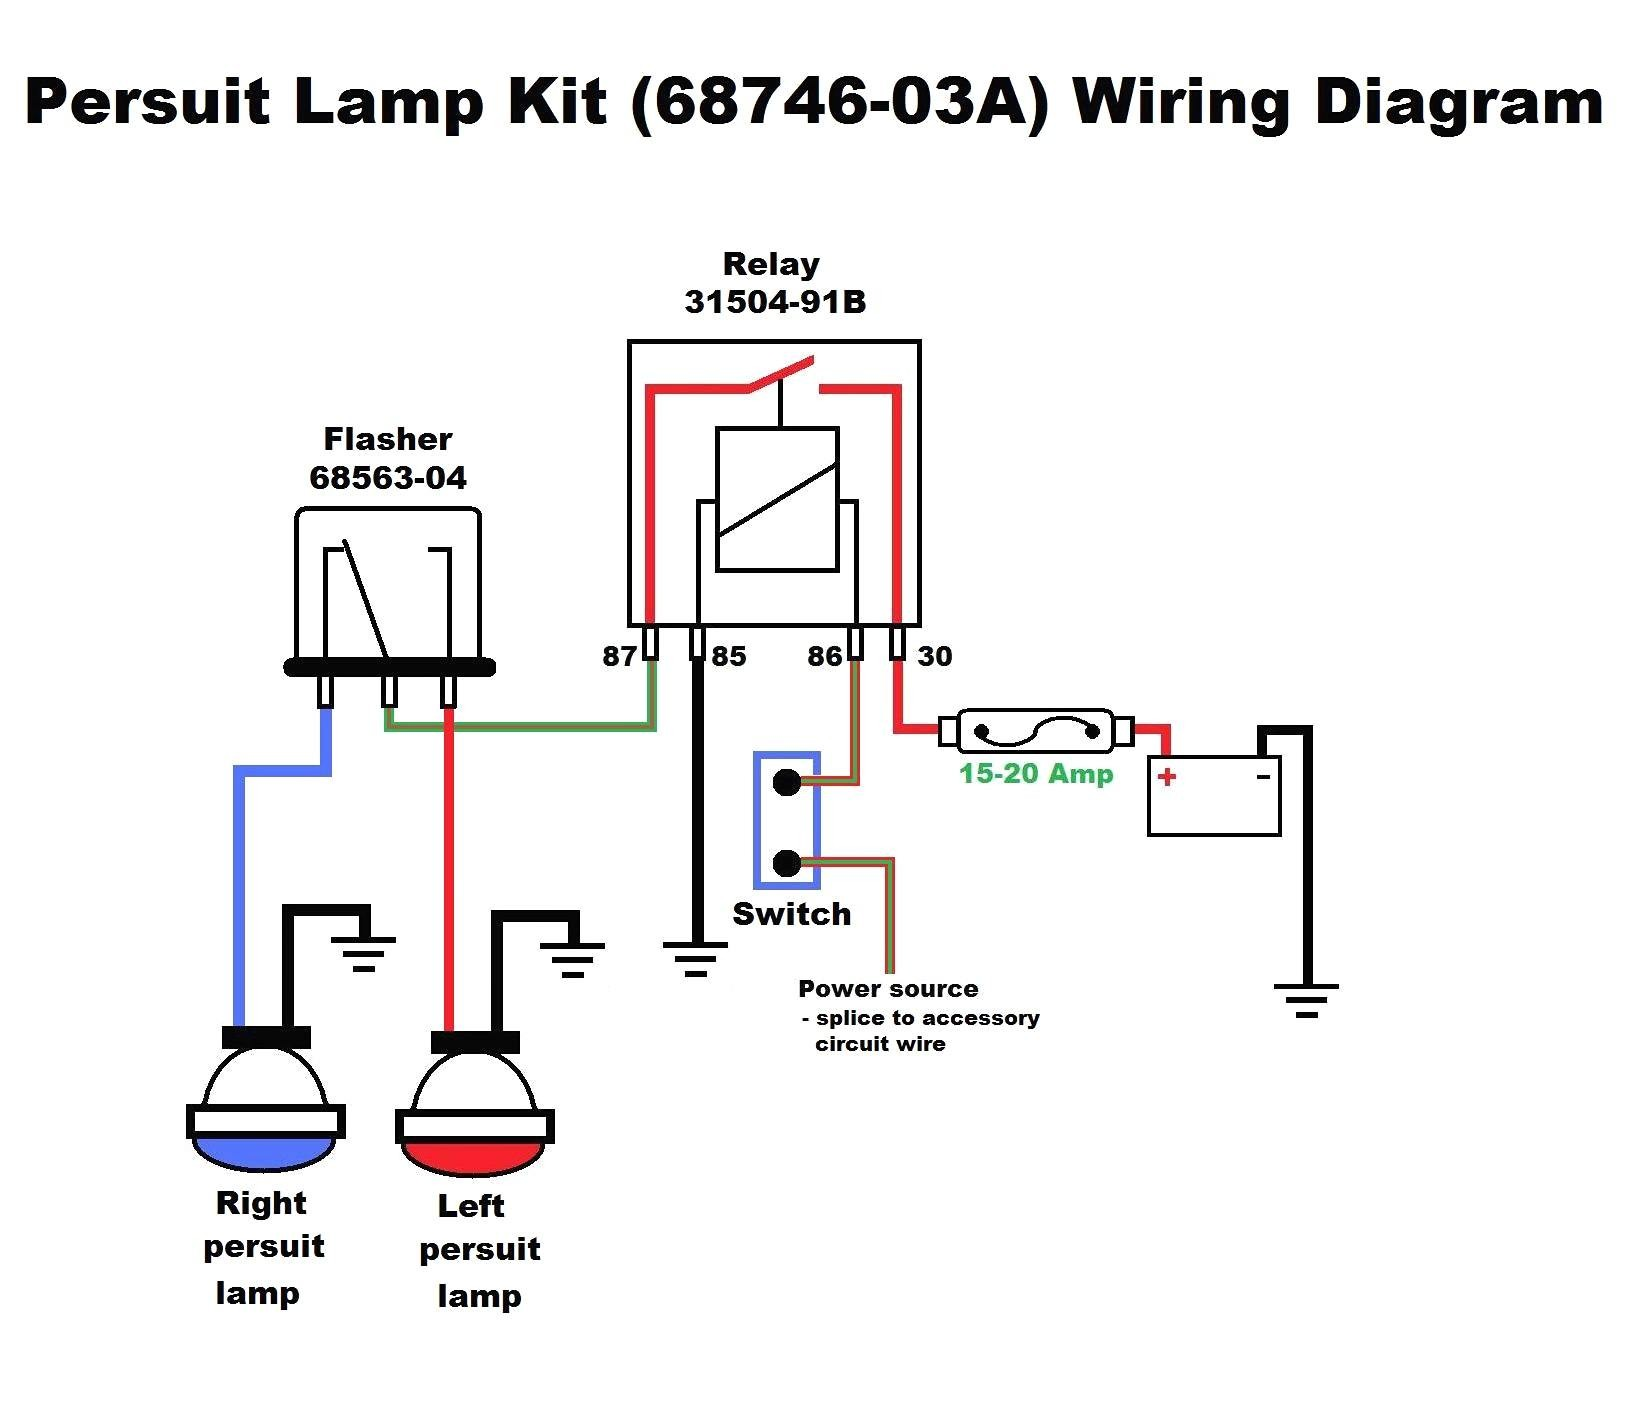 12 Volt Relay Wiring Diagram Simple 12v Horn Wiring Diagram Readingrat Net within Flasher Relay Of 12 Volt Relay Wiring Diagram